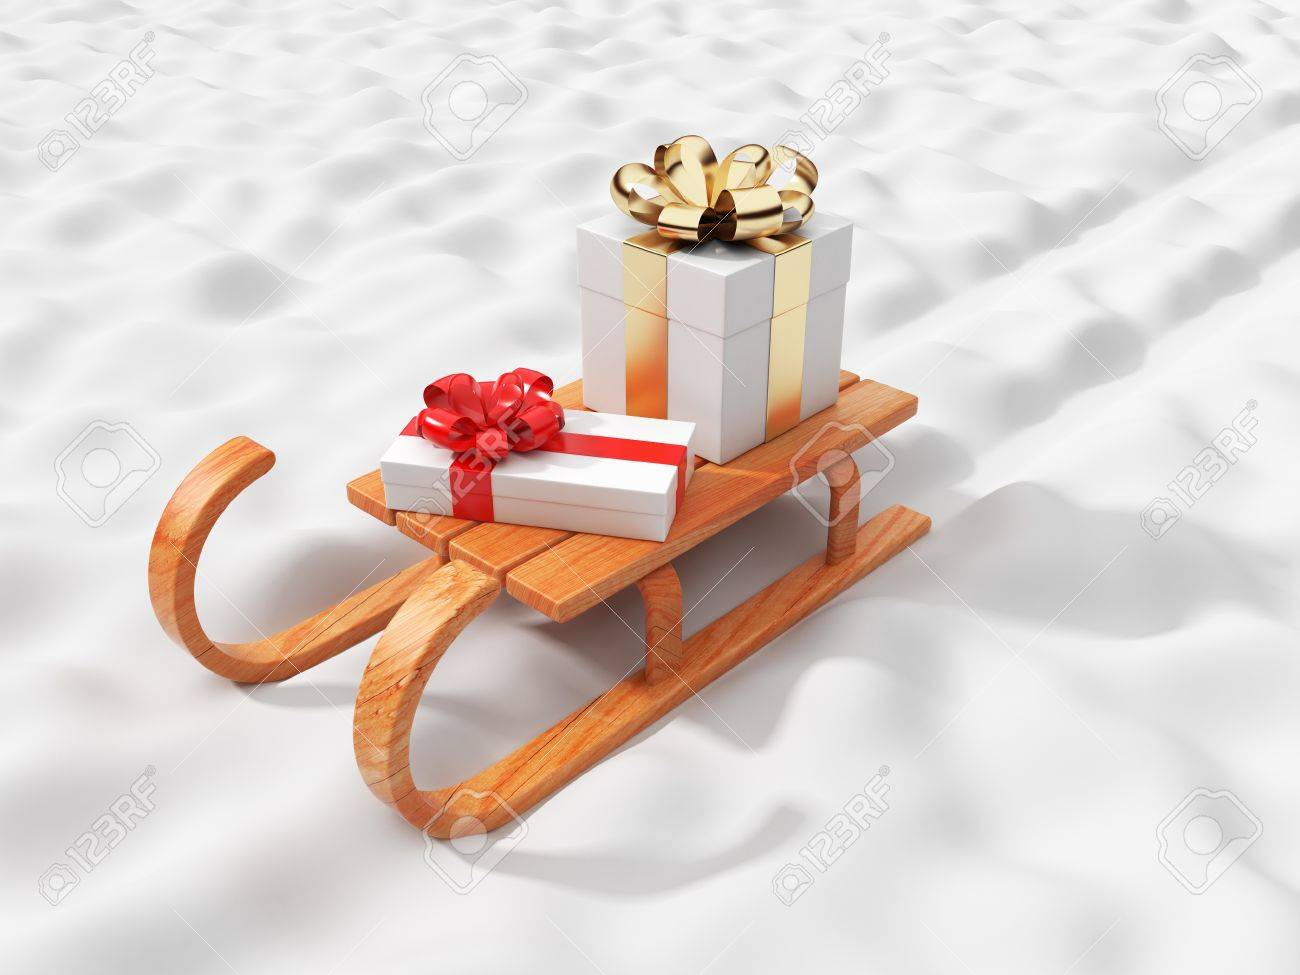 Gift On Wooden Sled, Going On Snow. Christmas Concept. 3D ...